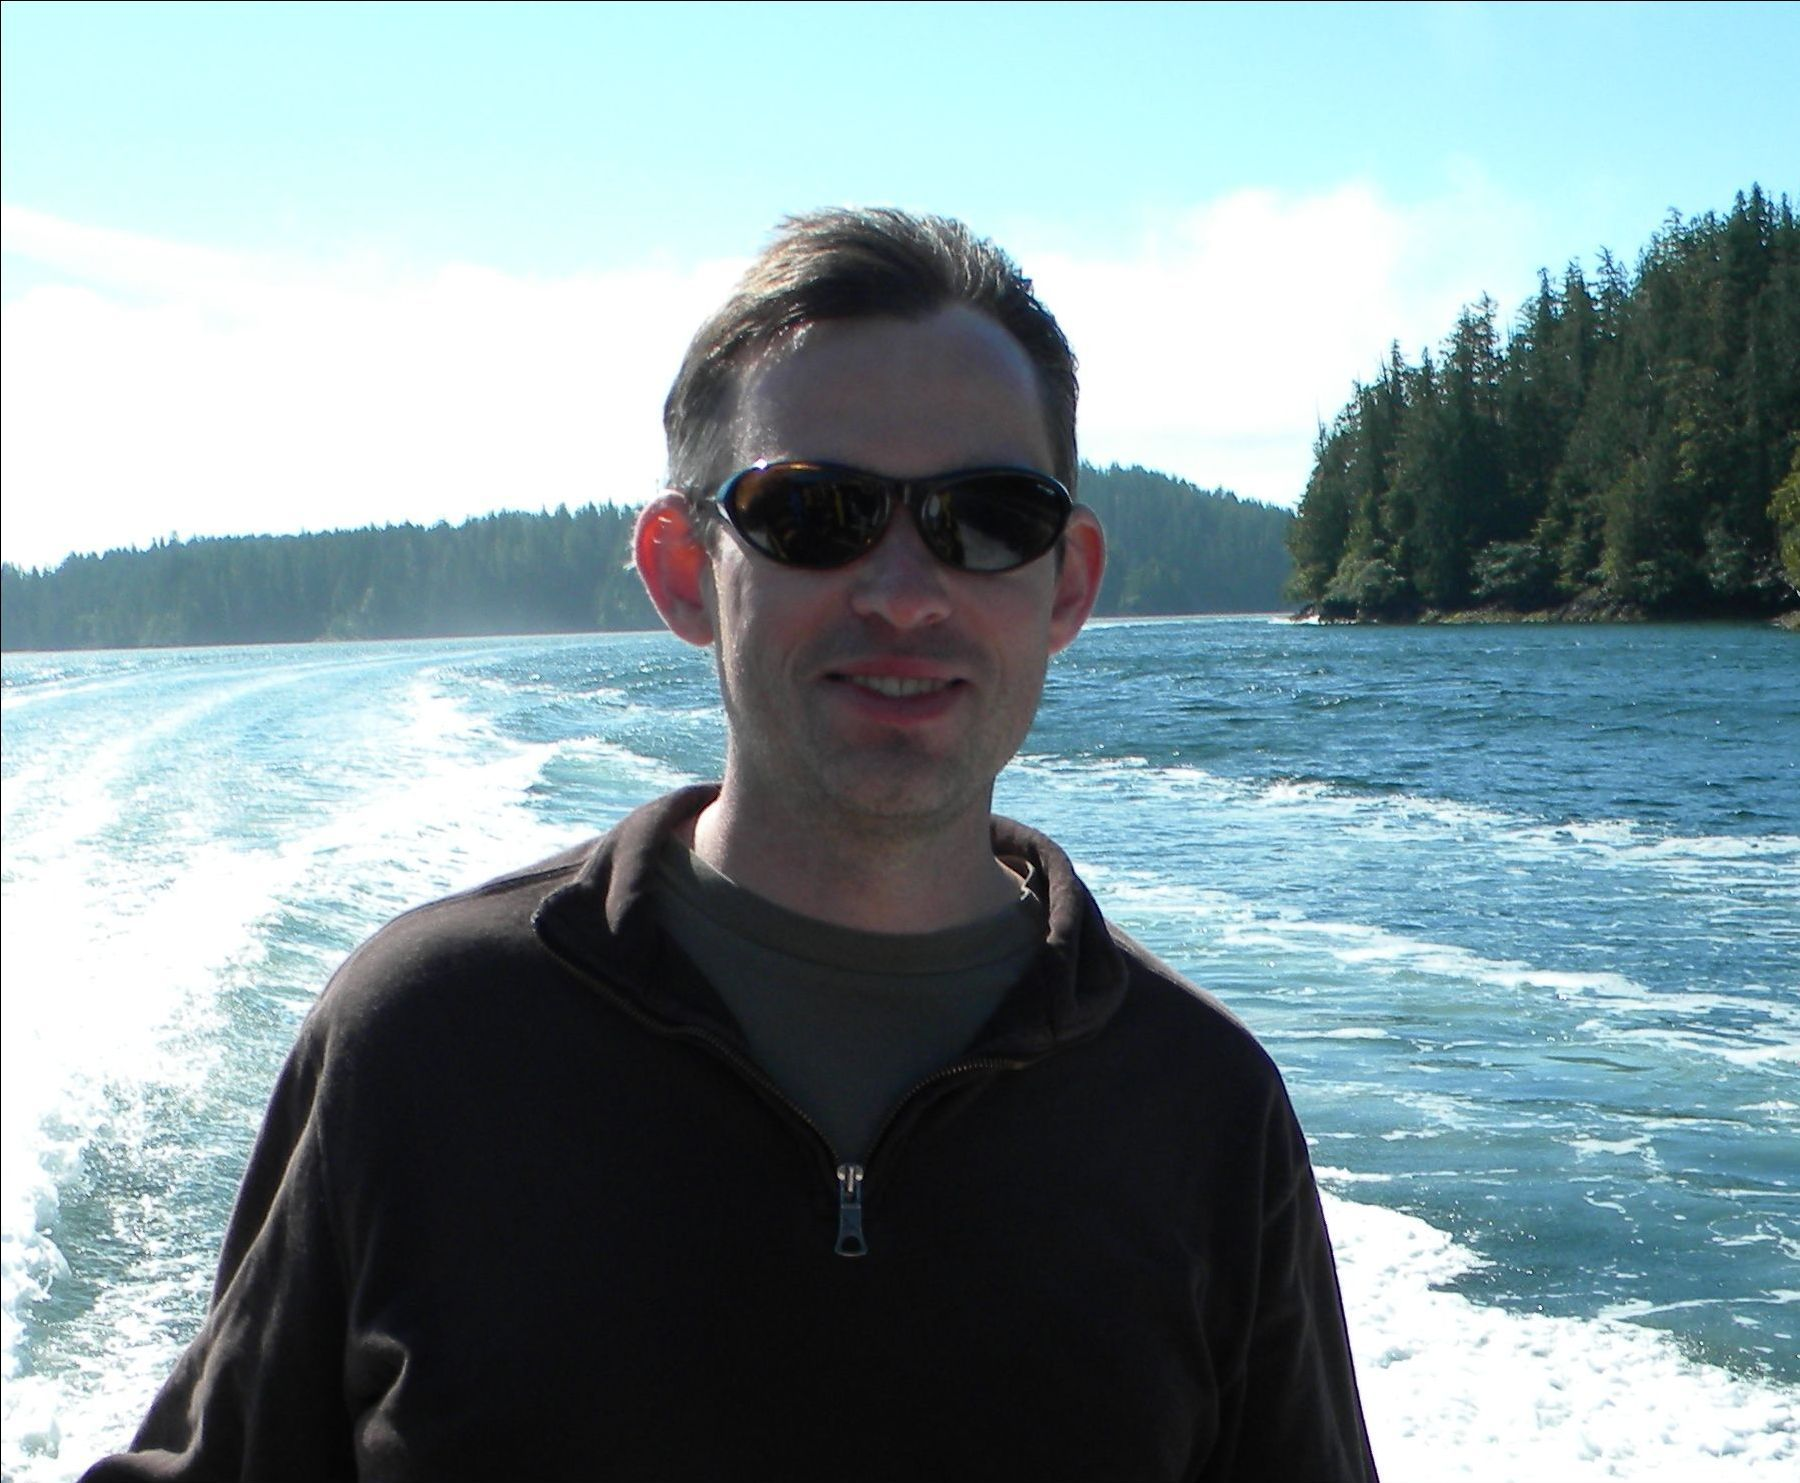 Kevin Murphy on boat in Tofino, BC, August 2010